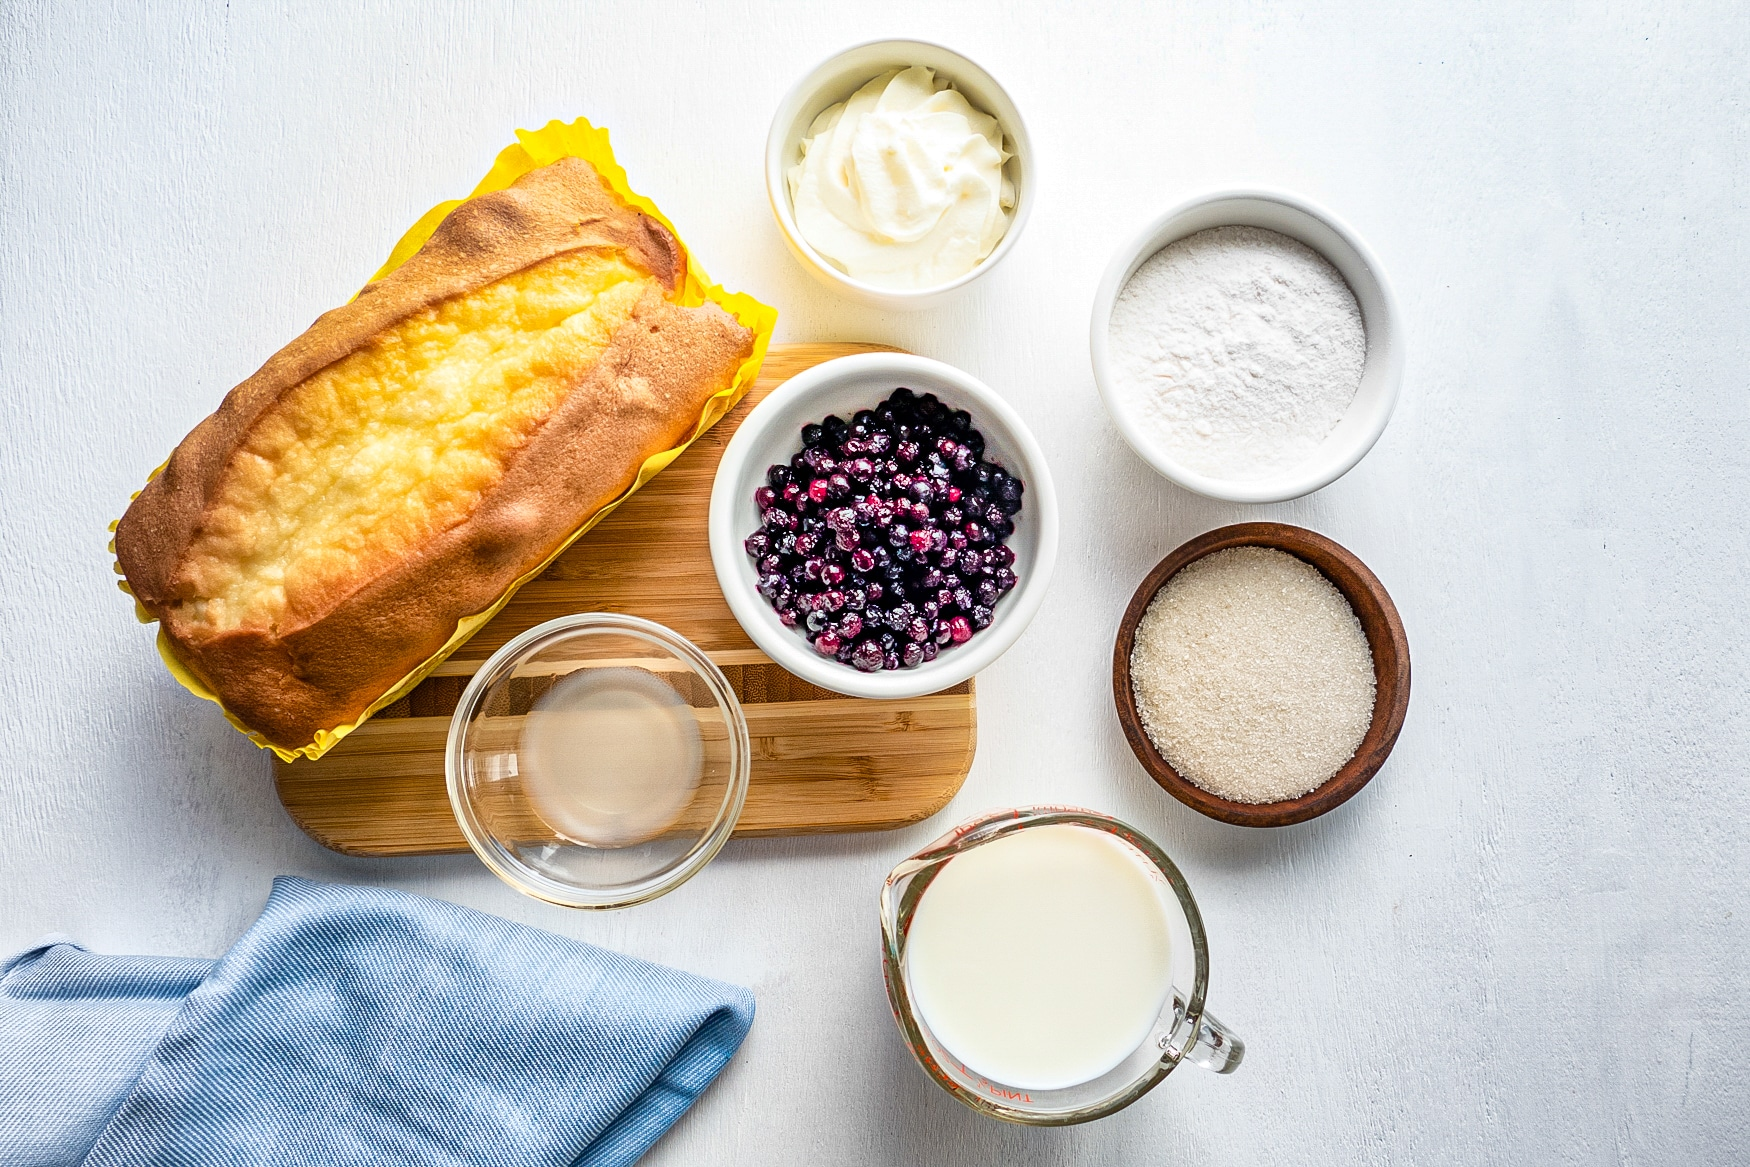 Ingredients needed to make blueberry parfaits.